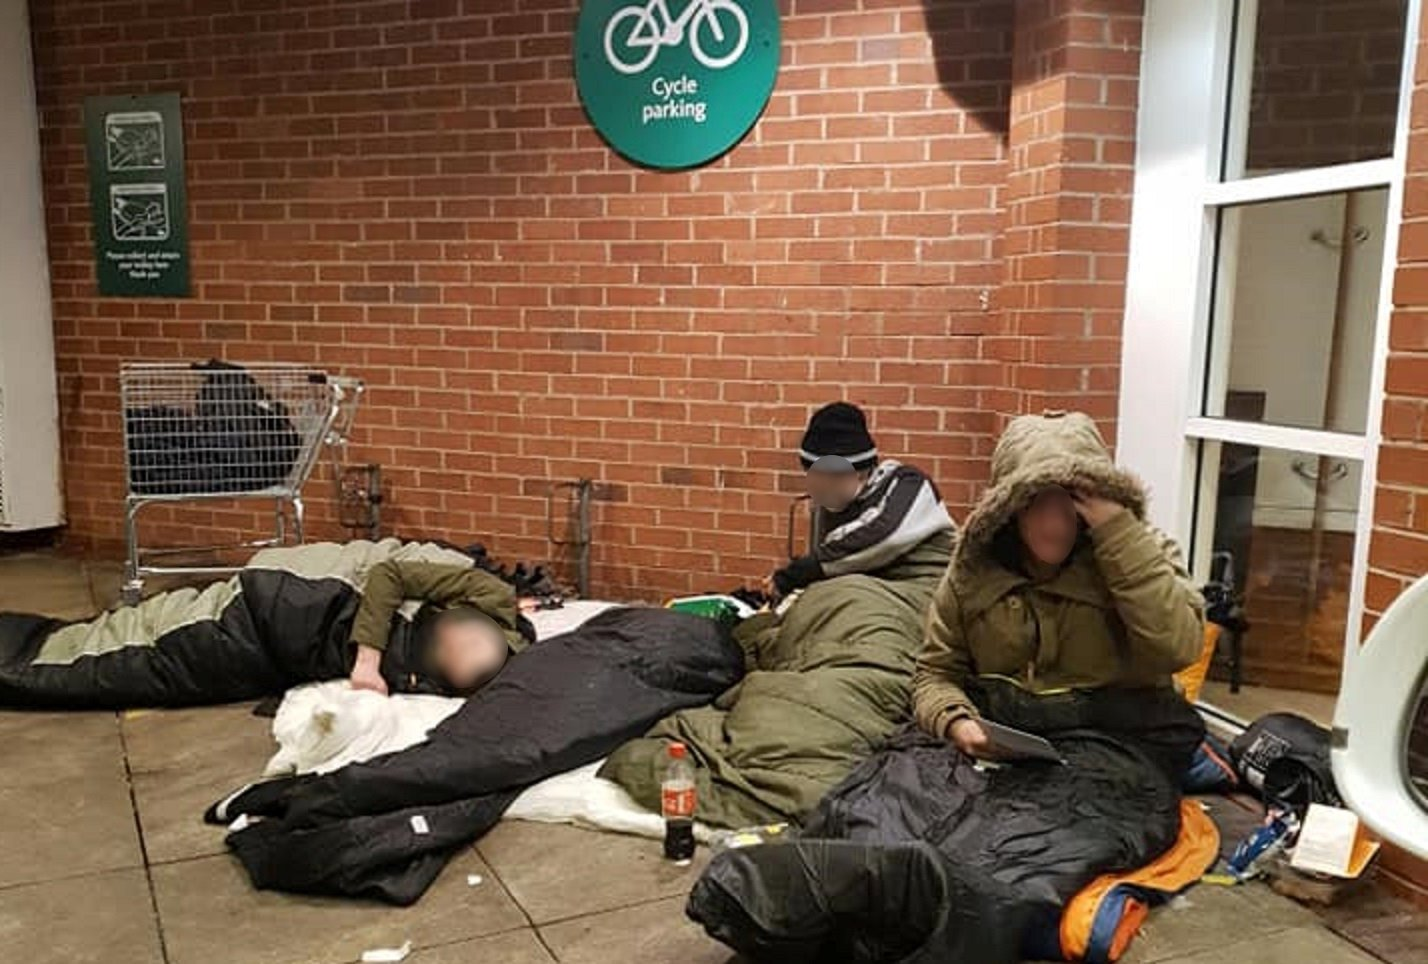 Morrisons staff threw away homeless people's tents